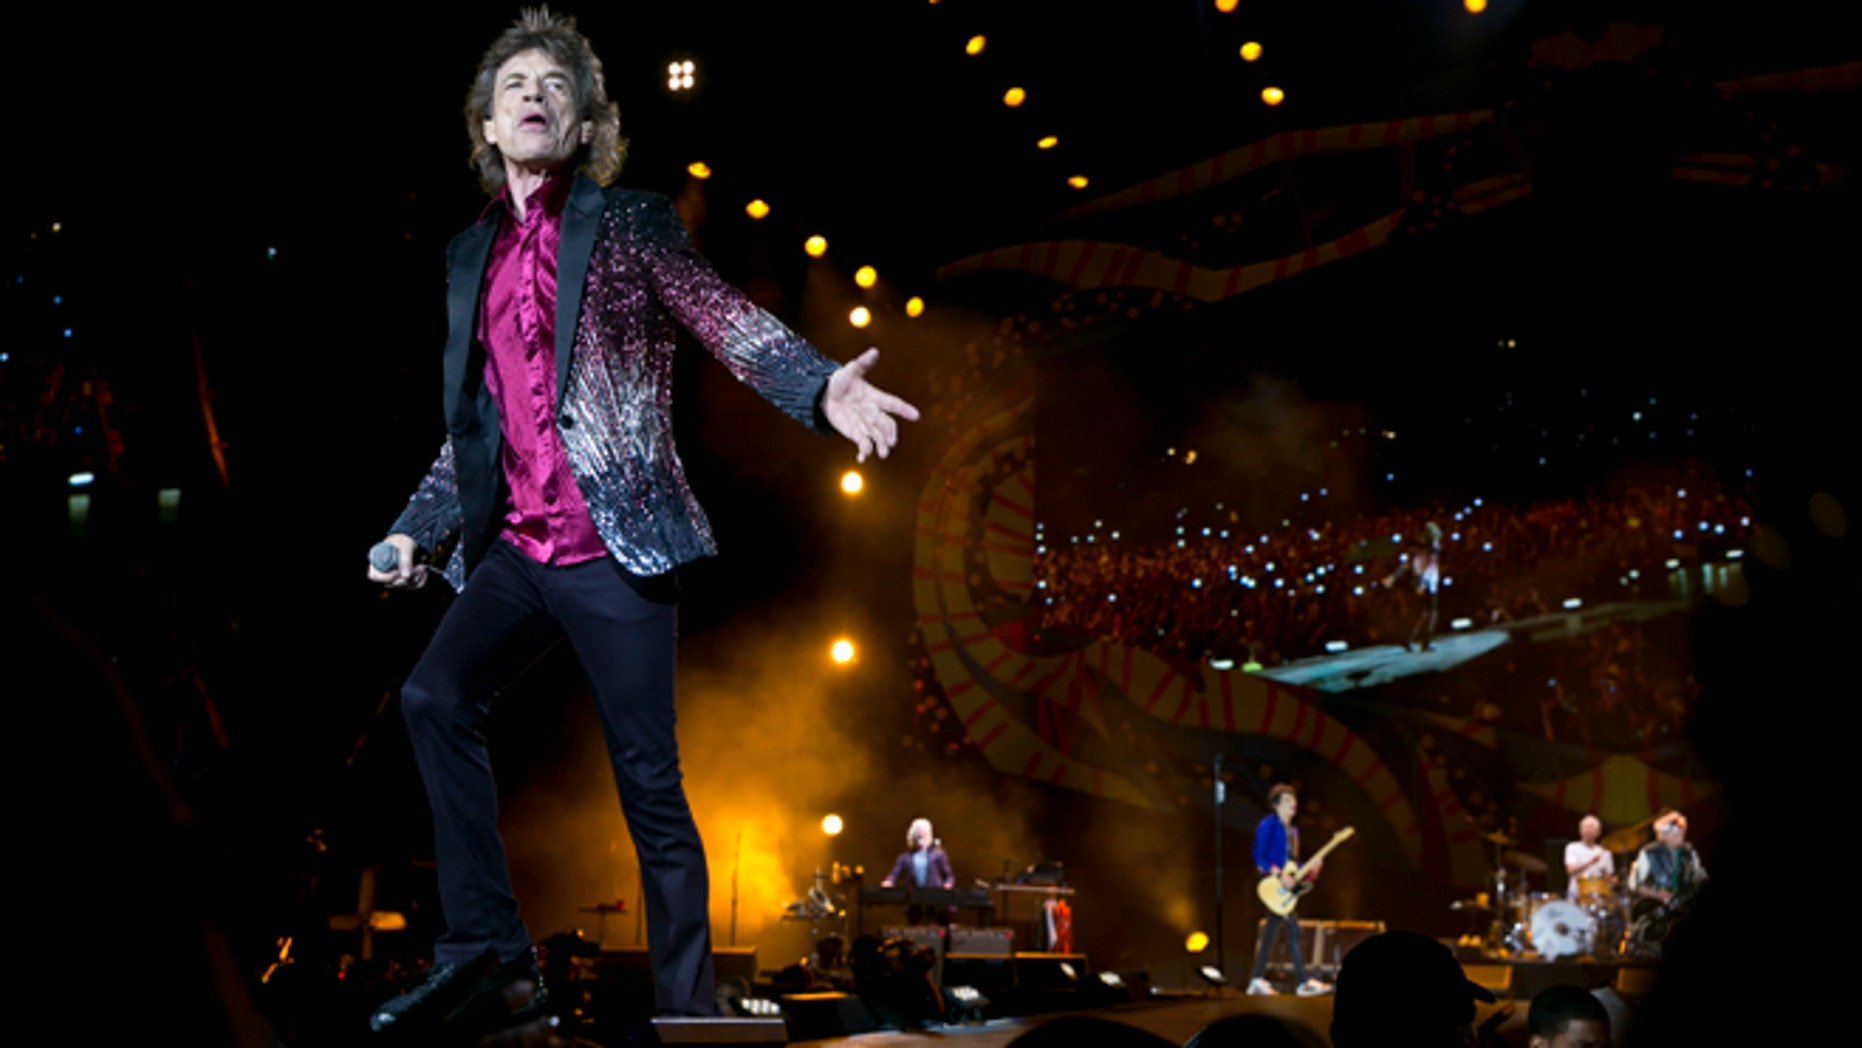 March 25, 2016. Mick Jagger of The Rolling Stones performs in Havana, Cuba.